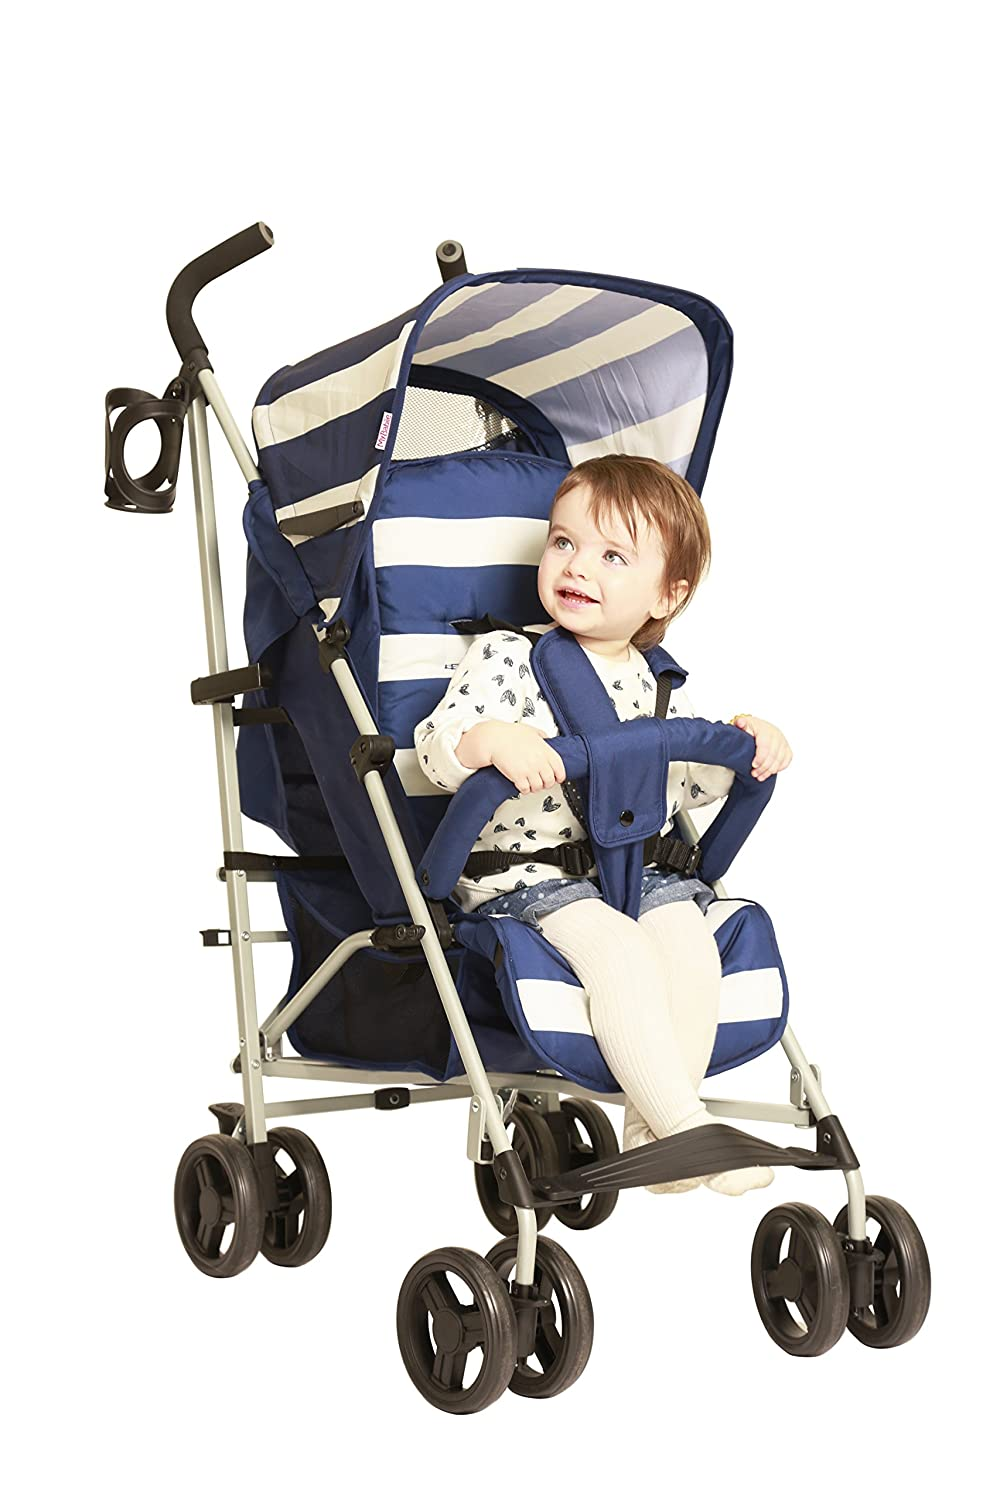 My Babiie Billie Faiers MB01 Blue Stripes Stroller 80.115.C.MB01BS